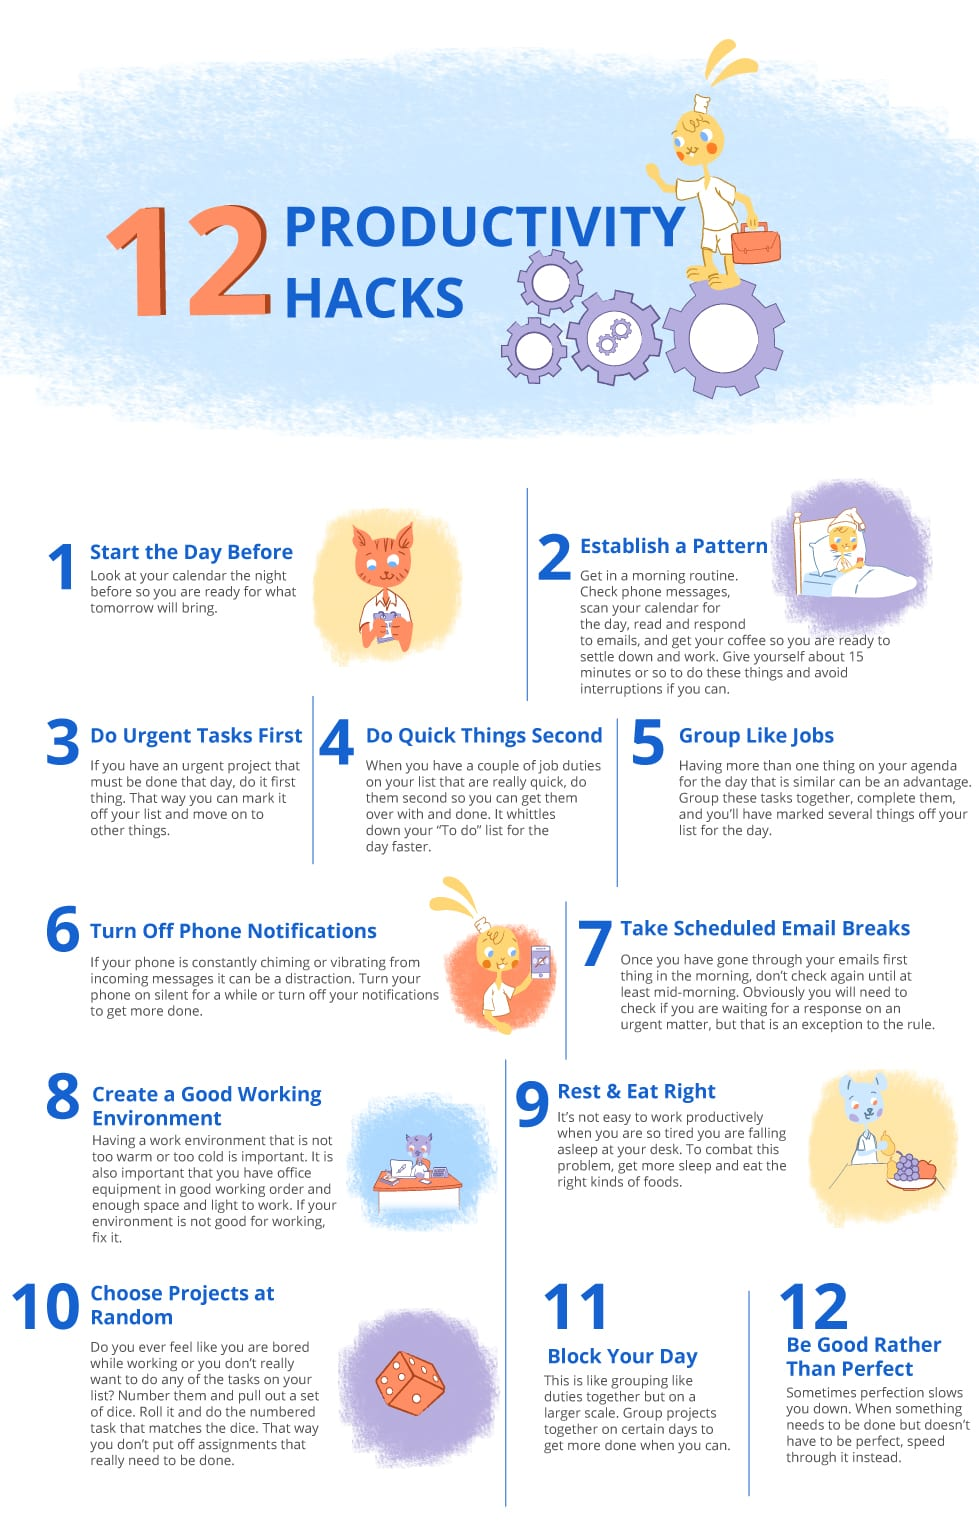 12 productivity hacks for Business Owners